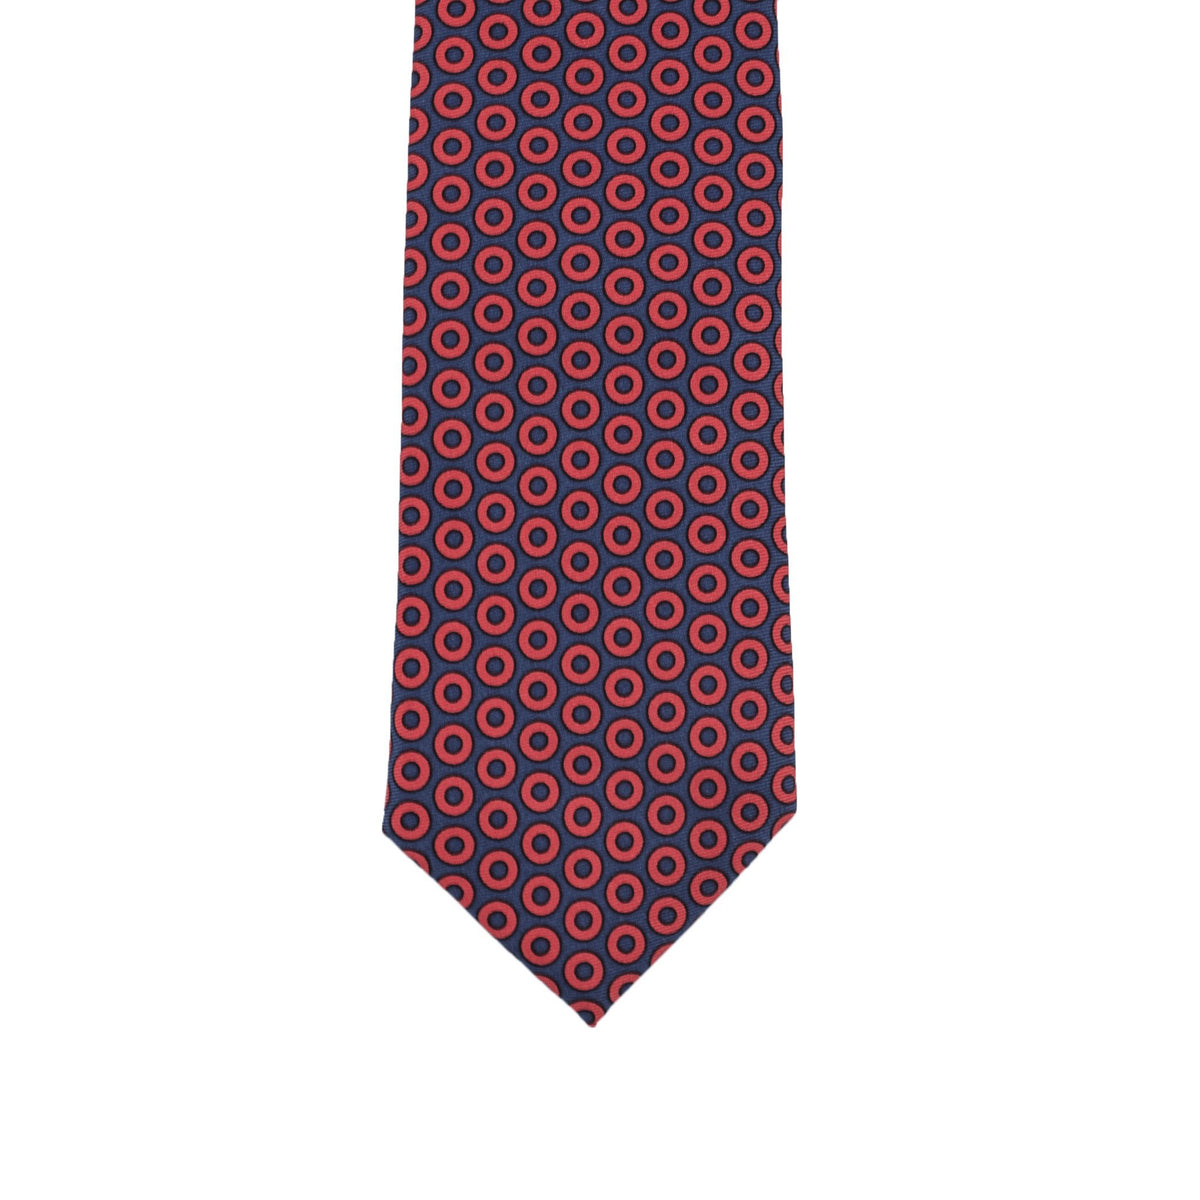 Kids All Over Print Donut Tie tie Section 119